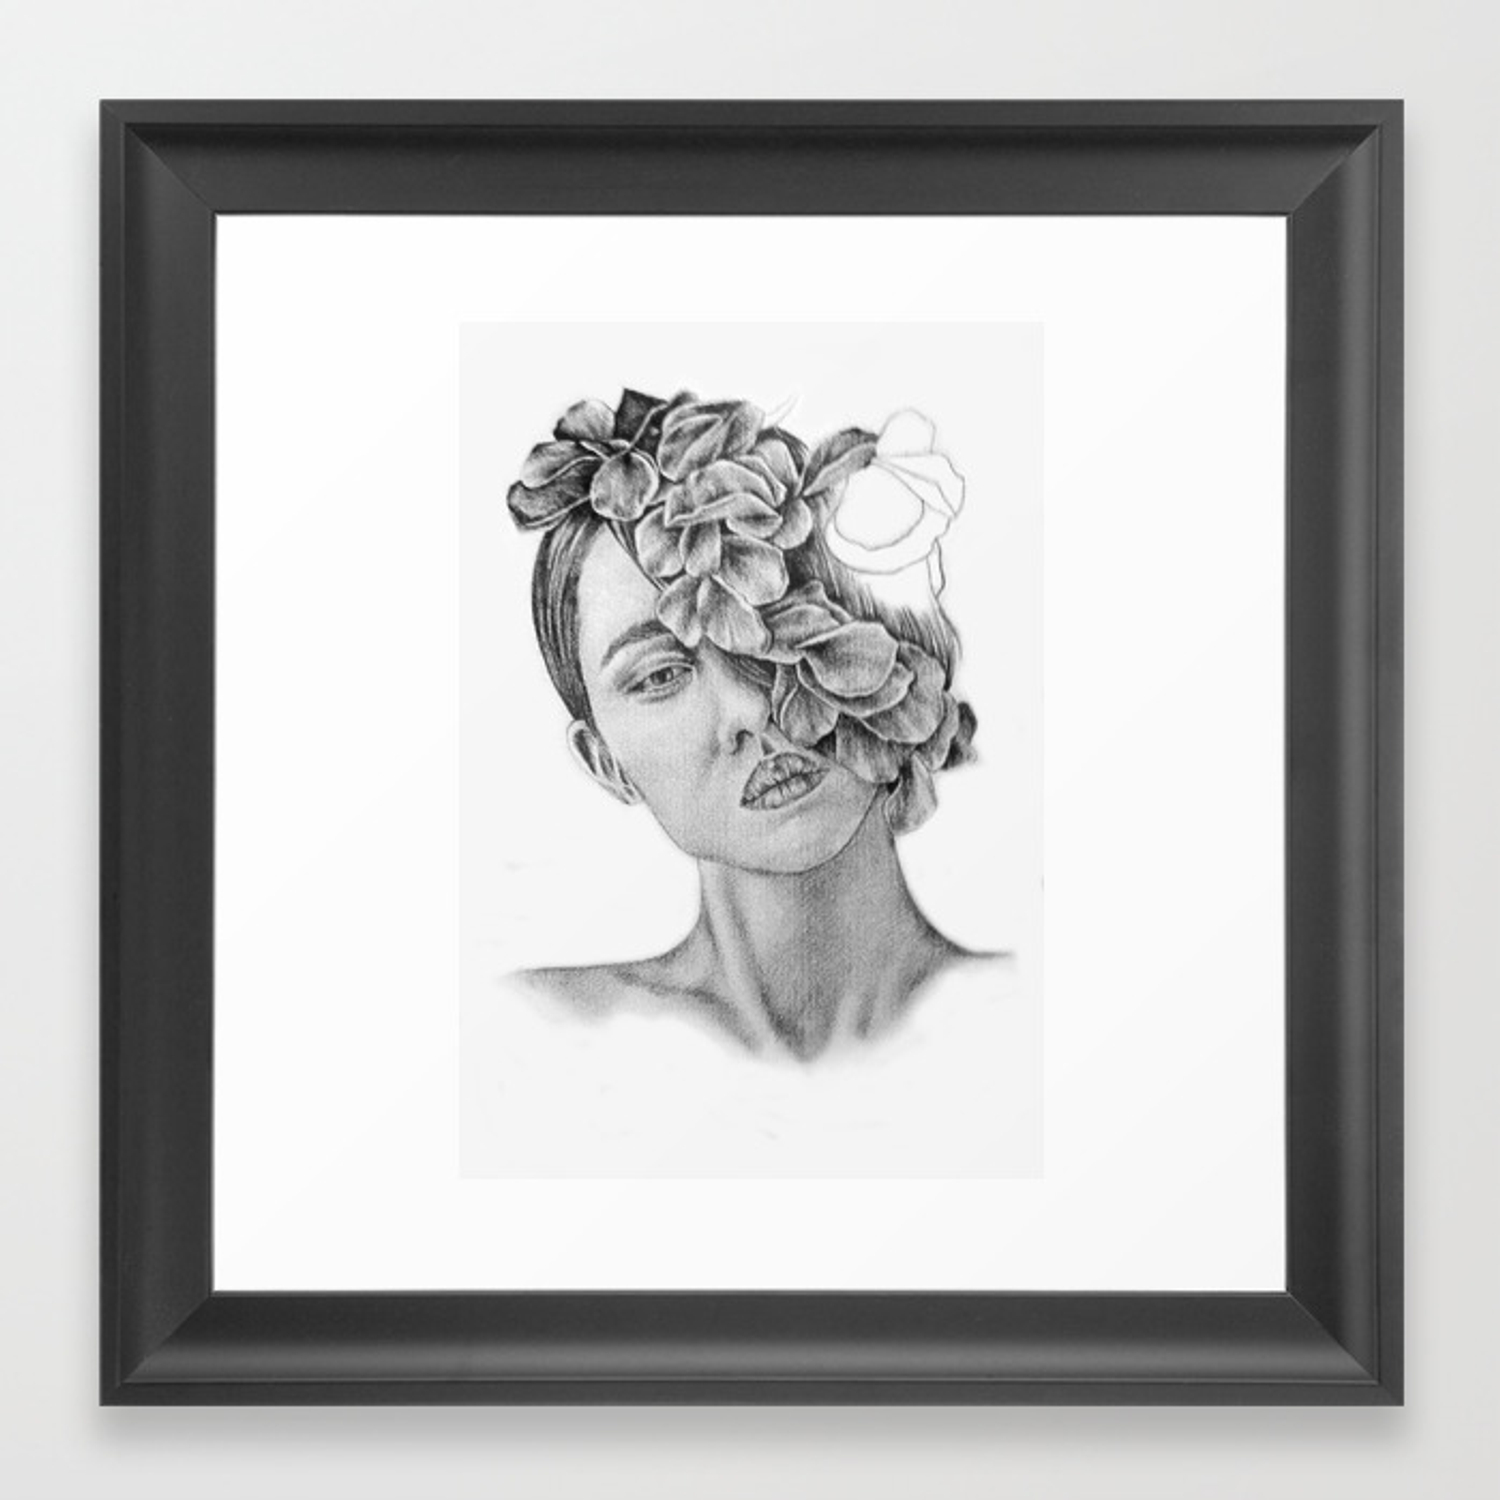 Art pencil drawing illustration portrait model flowers gift wall decor framed art print